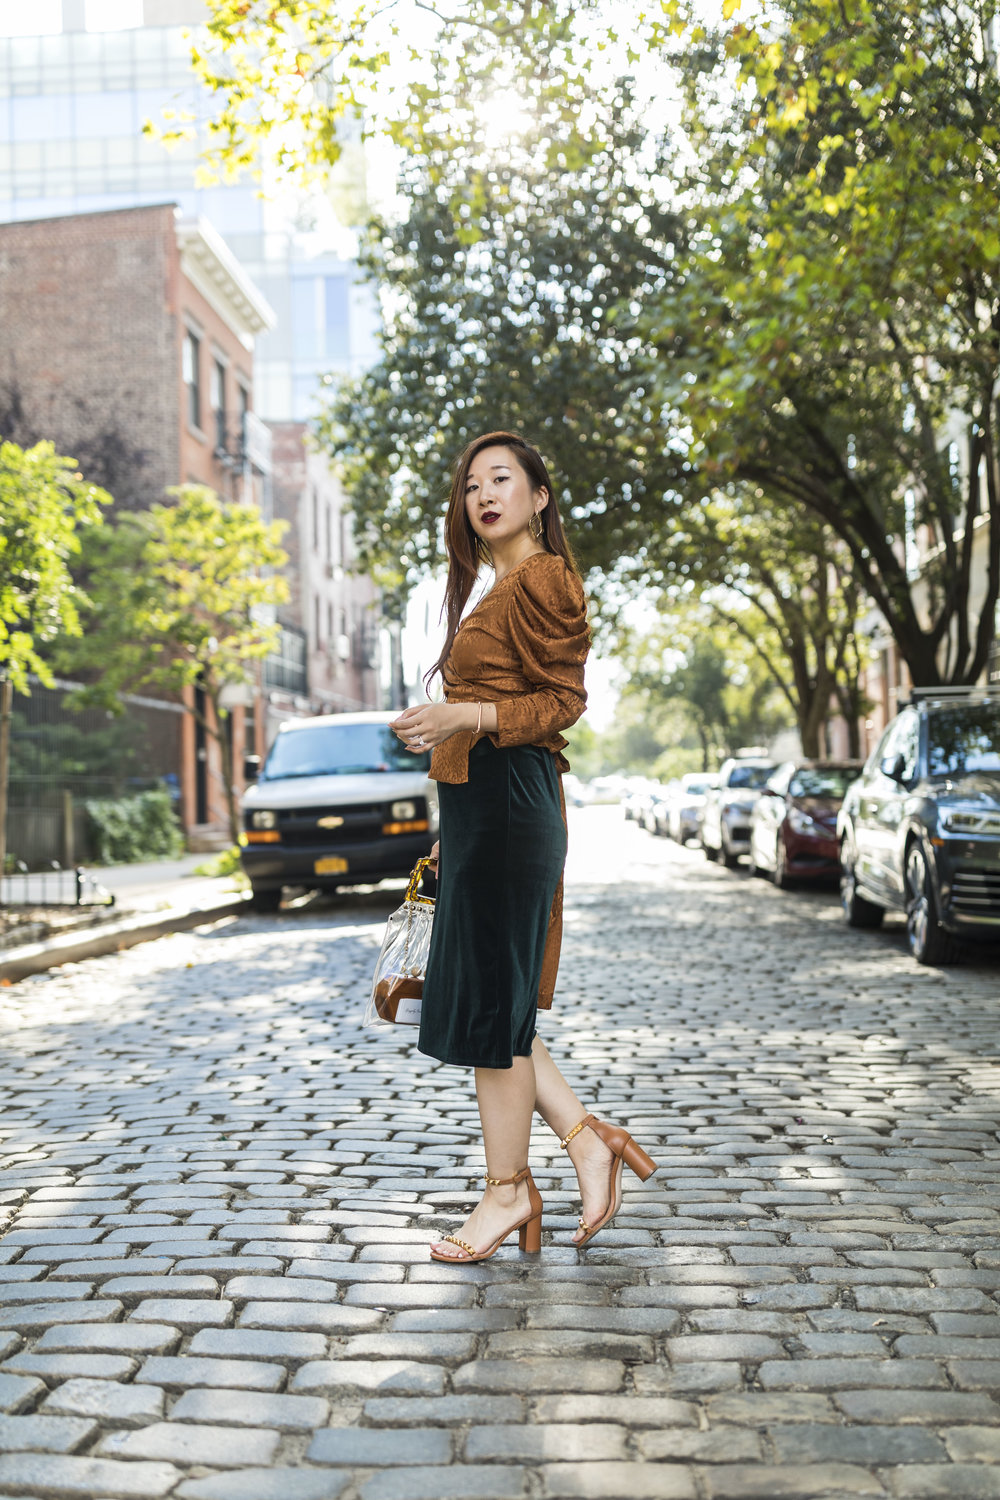 #NYFW Day 1 (Part 2)  - Welcoming warm autumn hues.